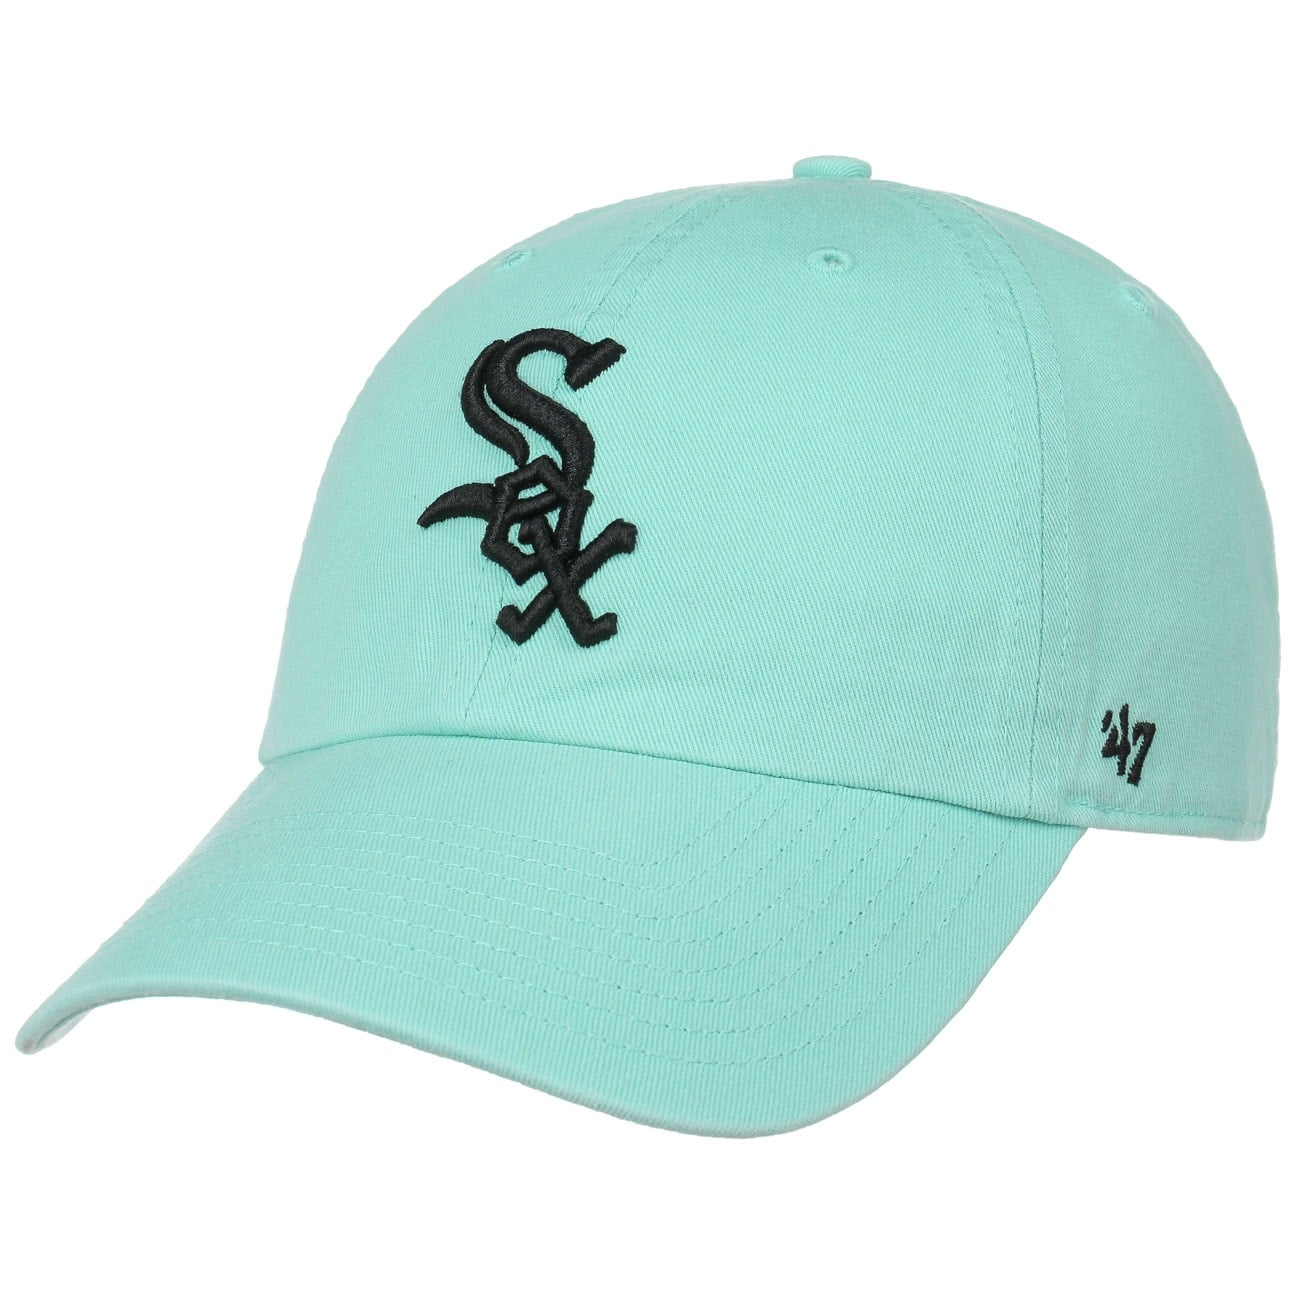 Gorra Clean Up Twotone White Sox by 47 Brand